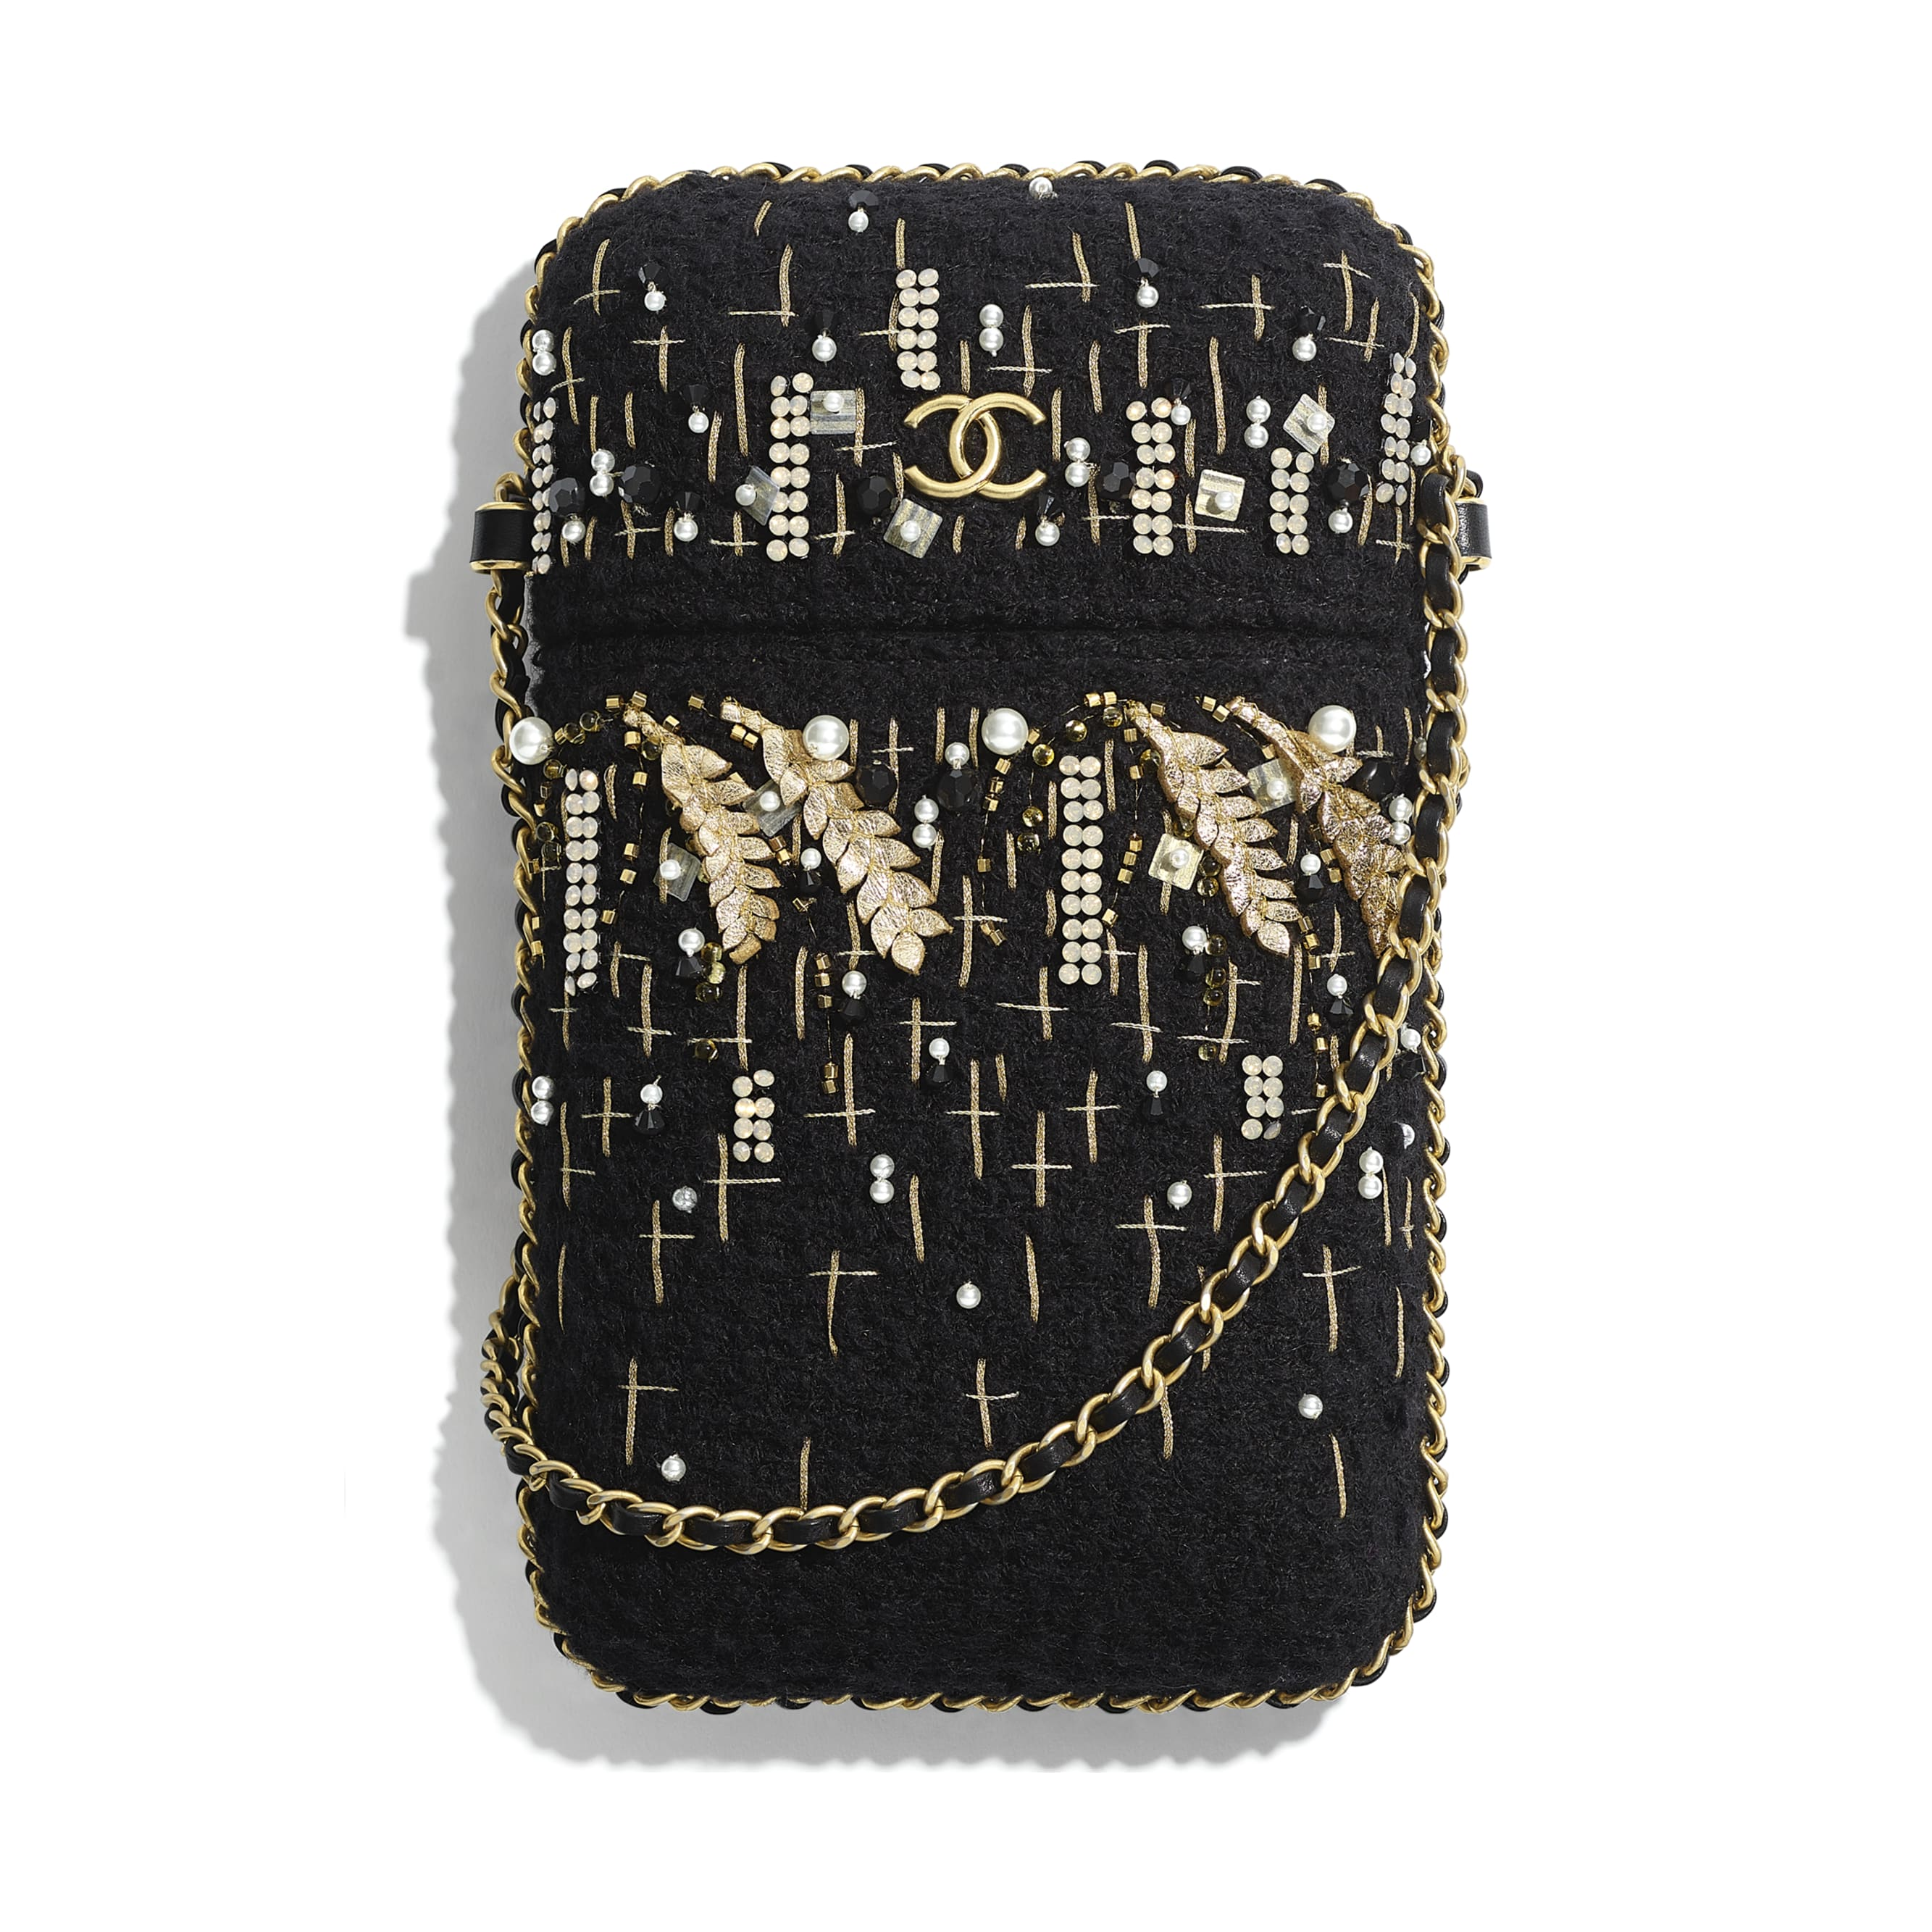 Clutch With Chain - Black & Gold - Tweed, Resin, Imitation Pearls, Diamante & Gold-Tone Metal - CHANEL - Default view - see standard sized version